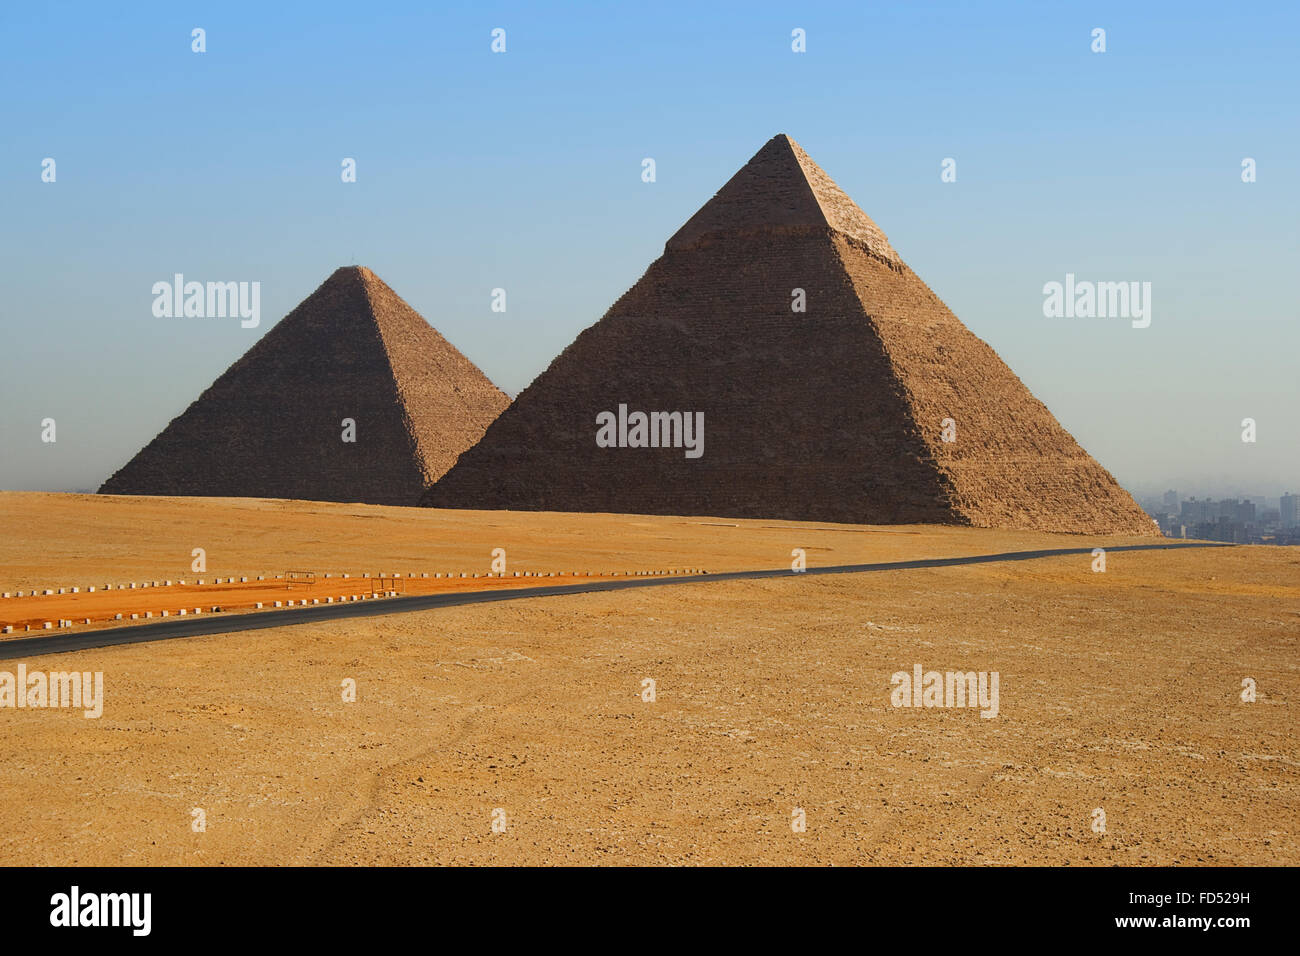 two of the great pyramids on the giza plateau - Stock Image